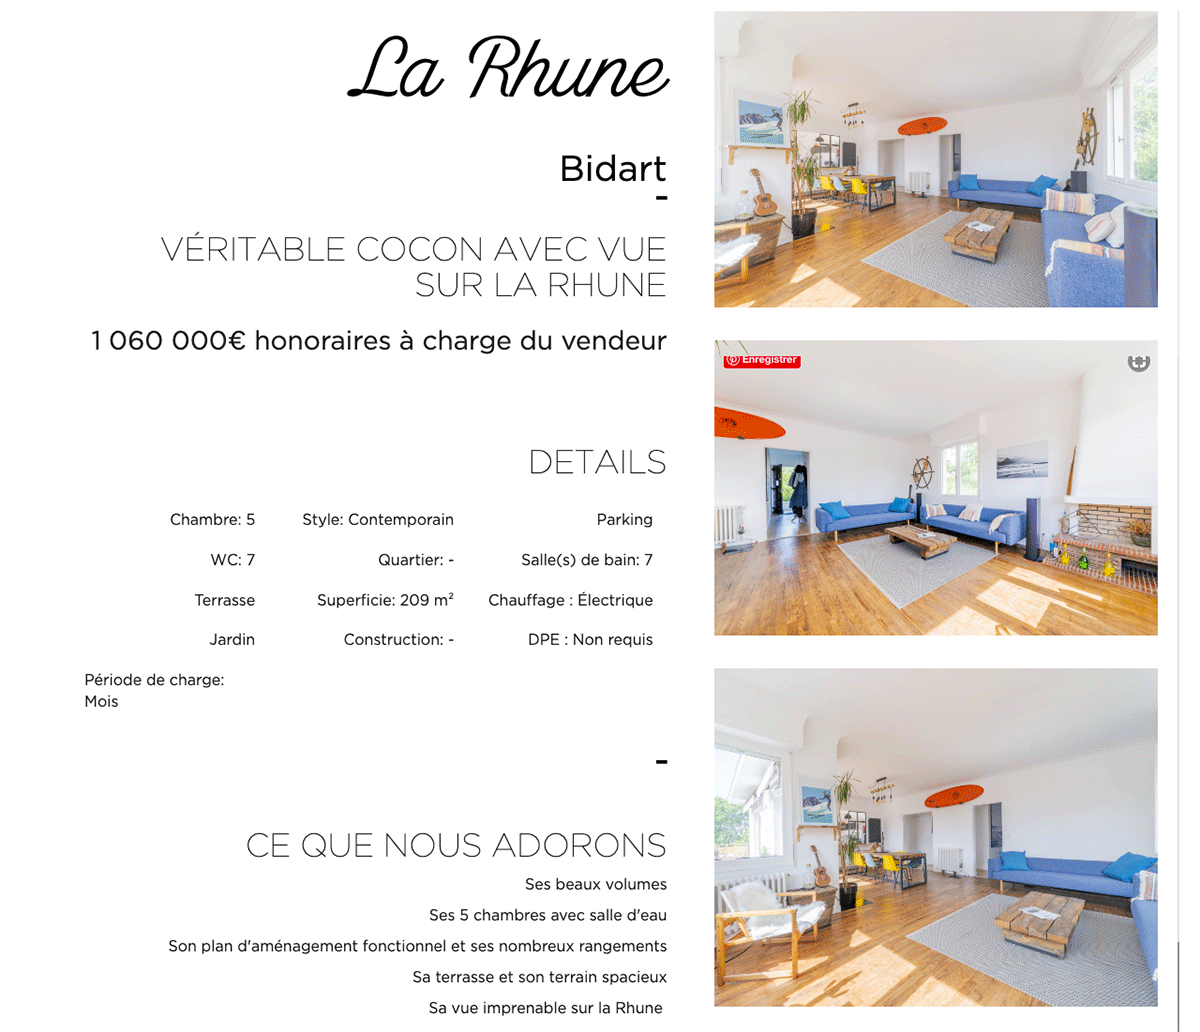 Extrait Fiche Propriete Made Real Estate